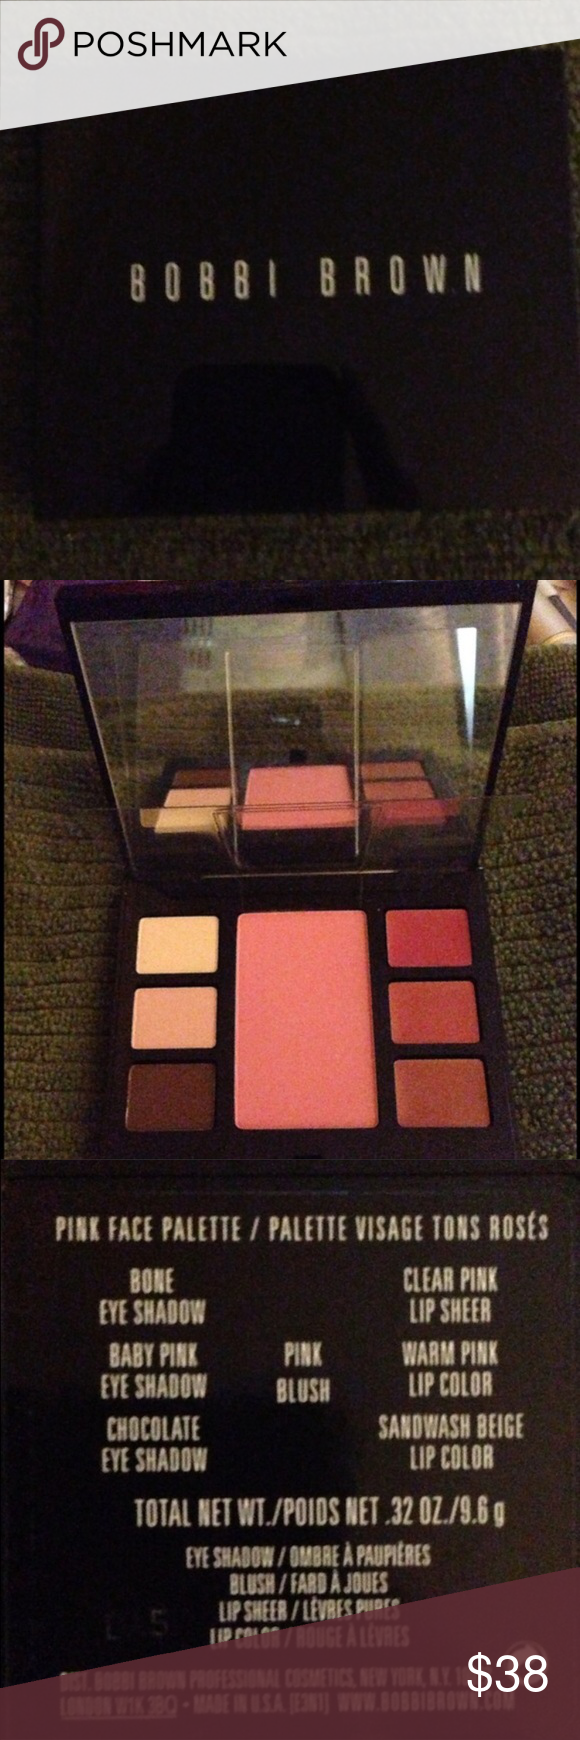 Bobby brown pink face palette Bobby brown pink face palette , eye shadow & lip sheer !! BRAND NEW NEVER USED!!!! Bobbi Brown Makeup Eyeshadow